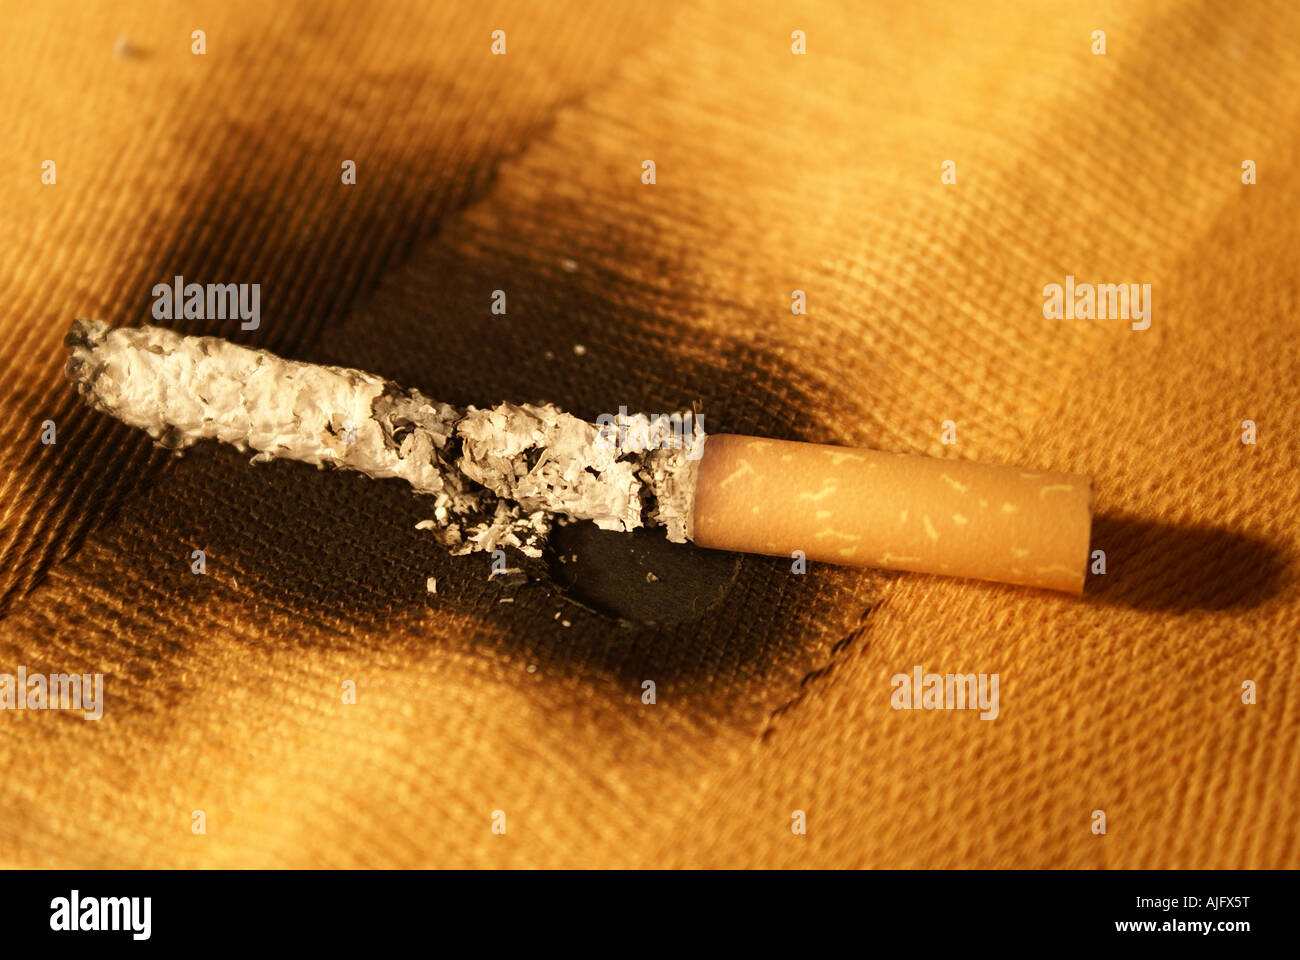 feu de la cigarette Photo Stock